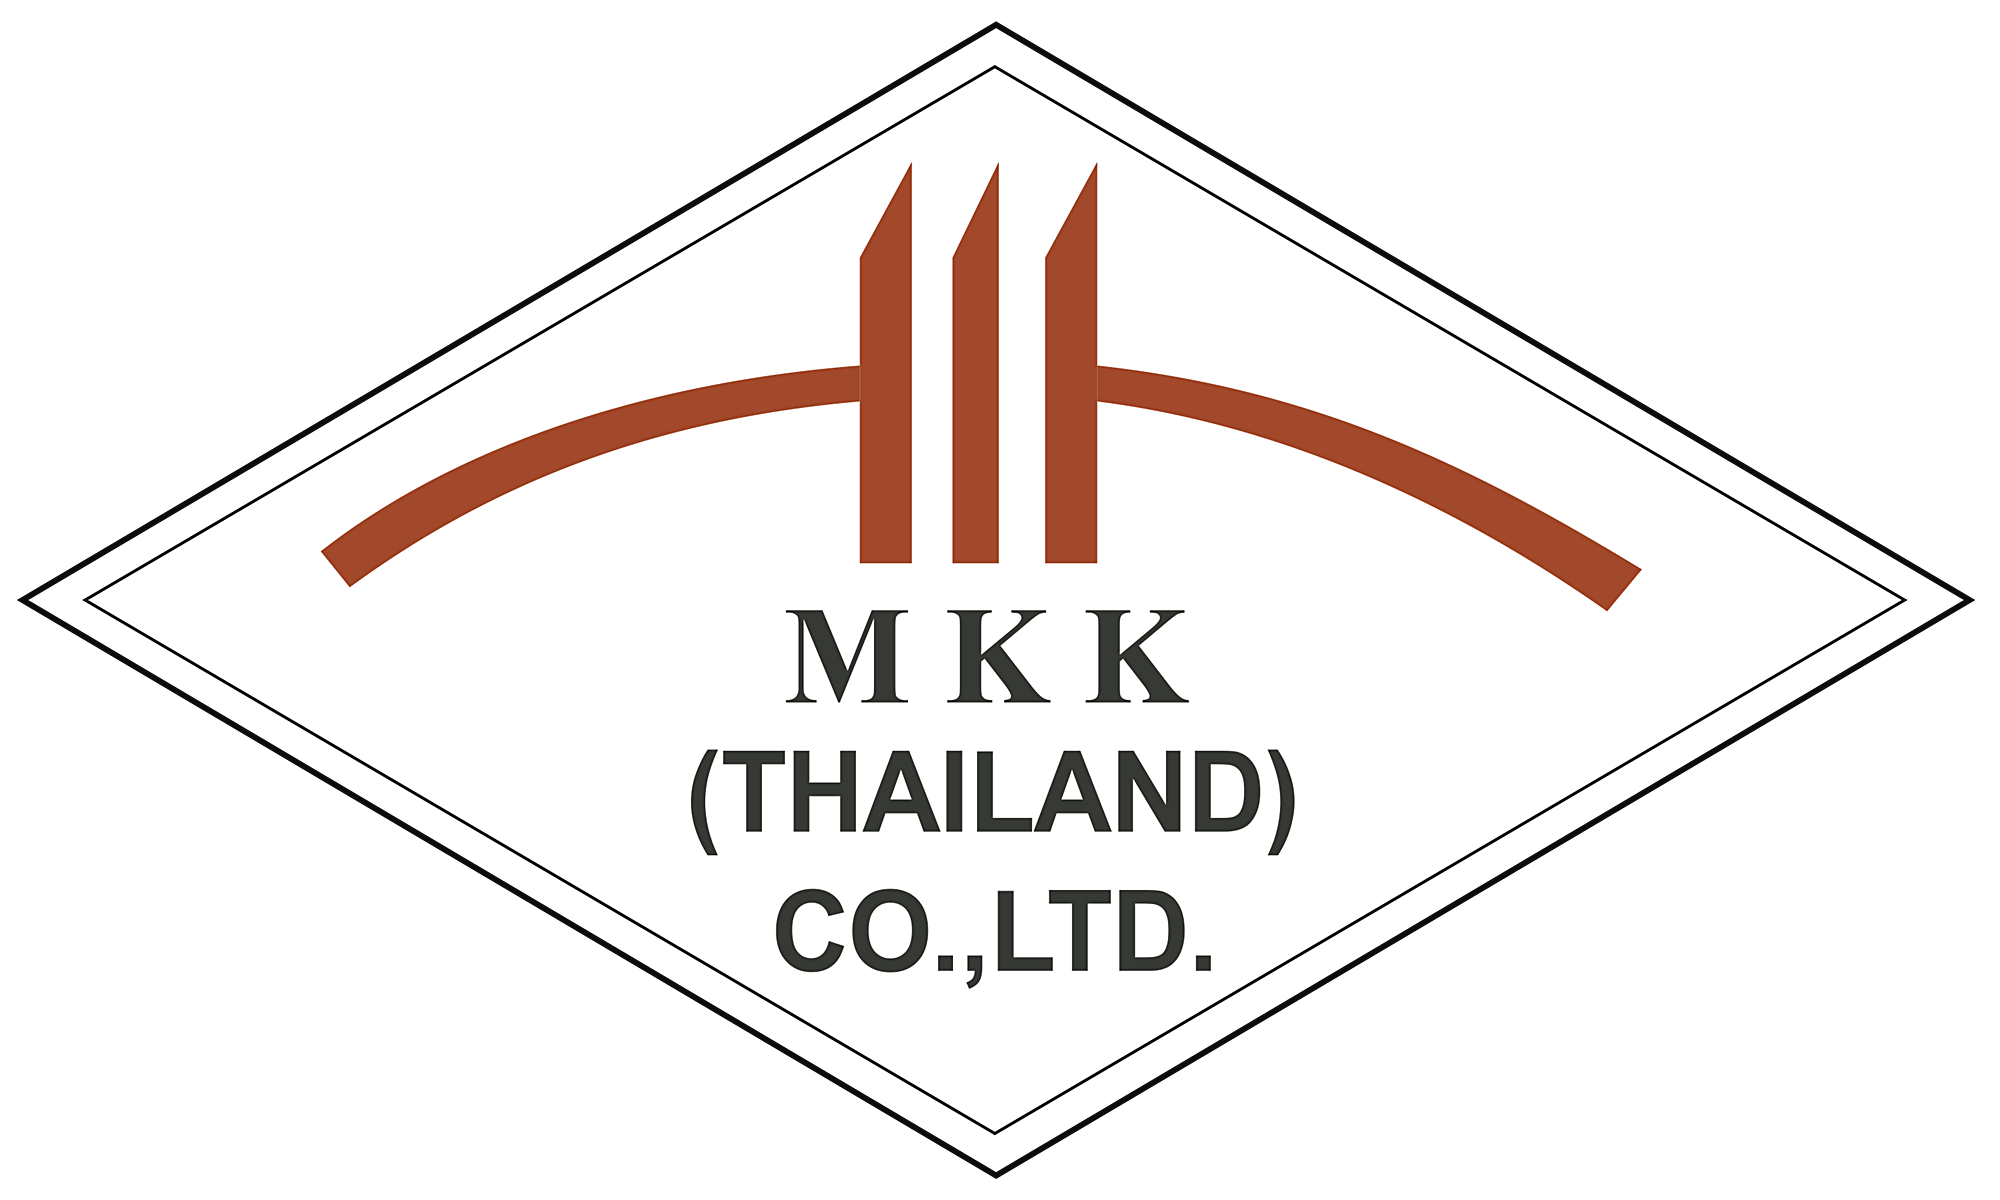 MKK (THAILAND) CO.,LTD.